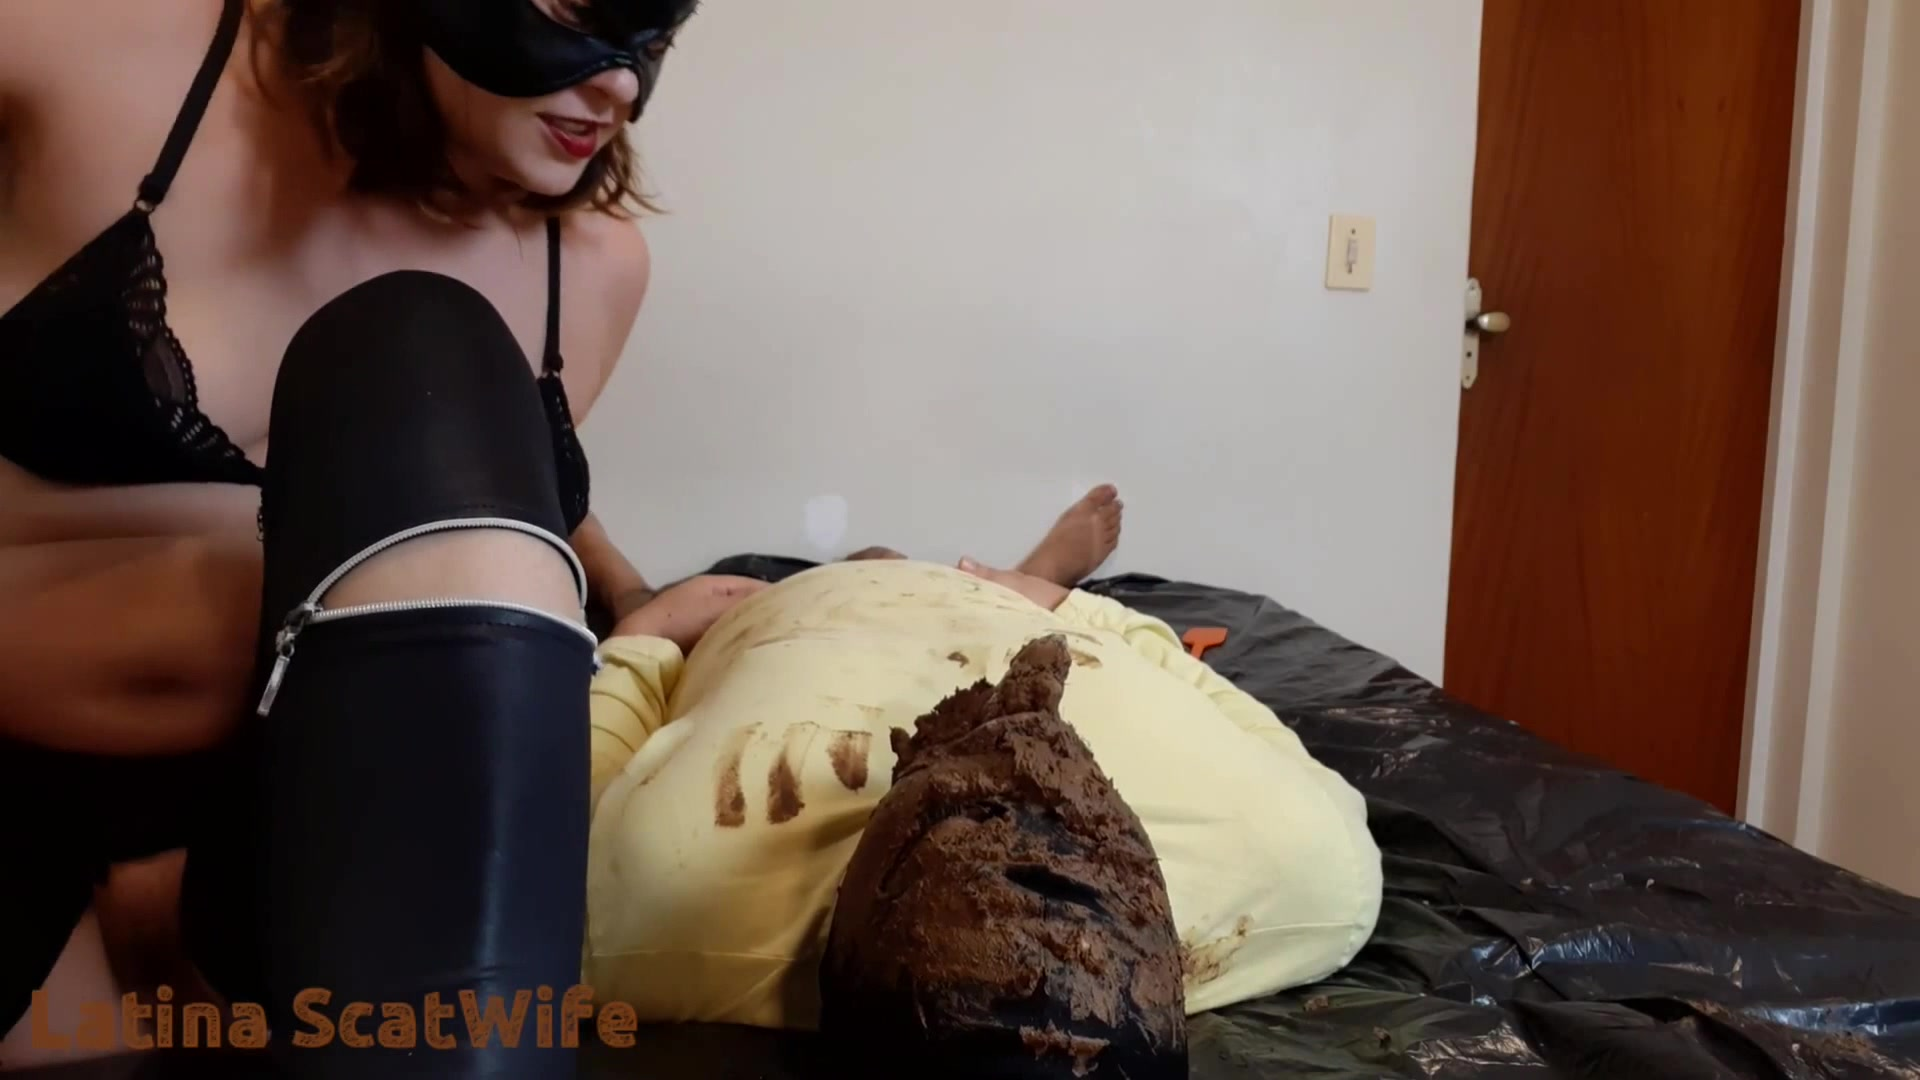 LatinaScatWife - Giving It Straight To The Slaves Mouth 00002